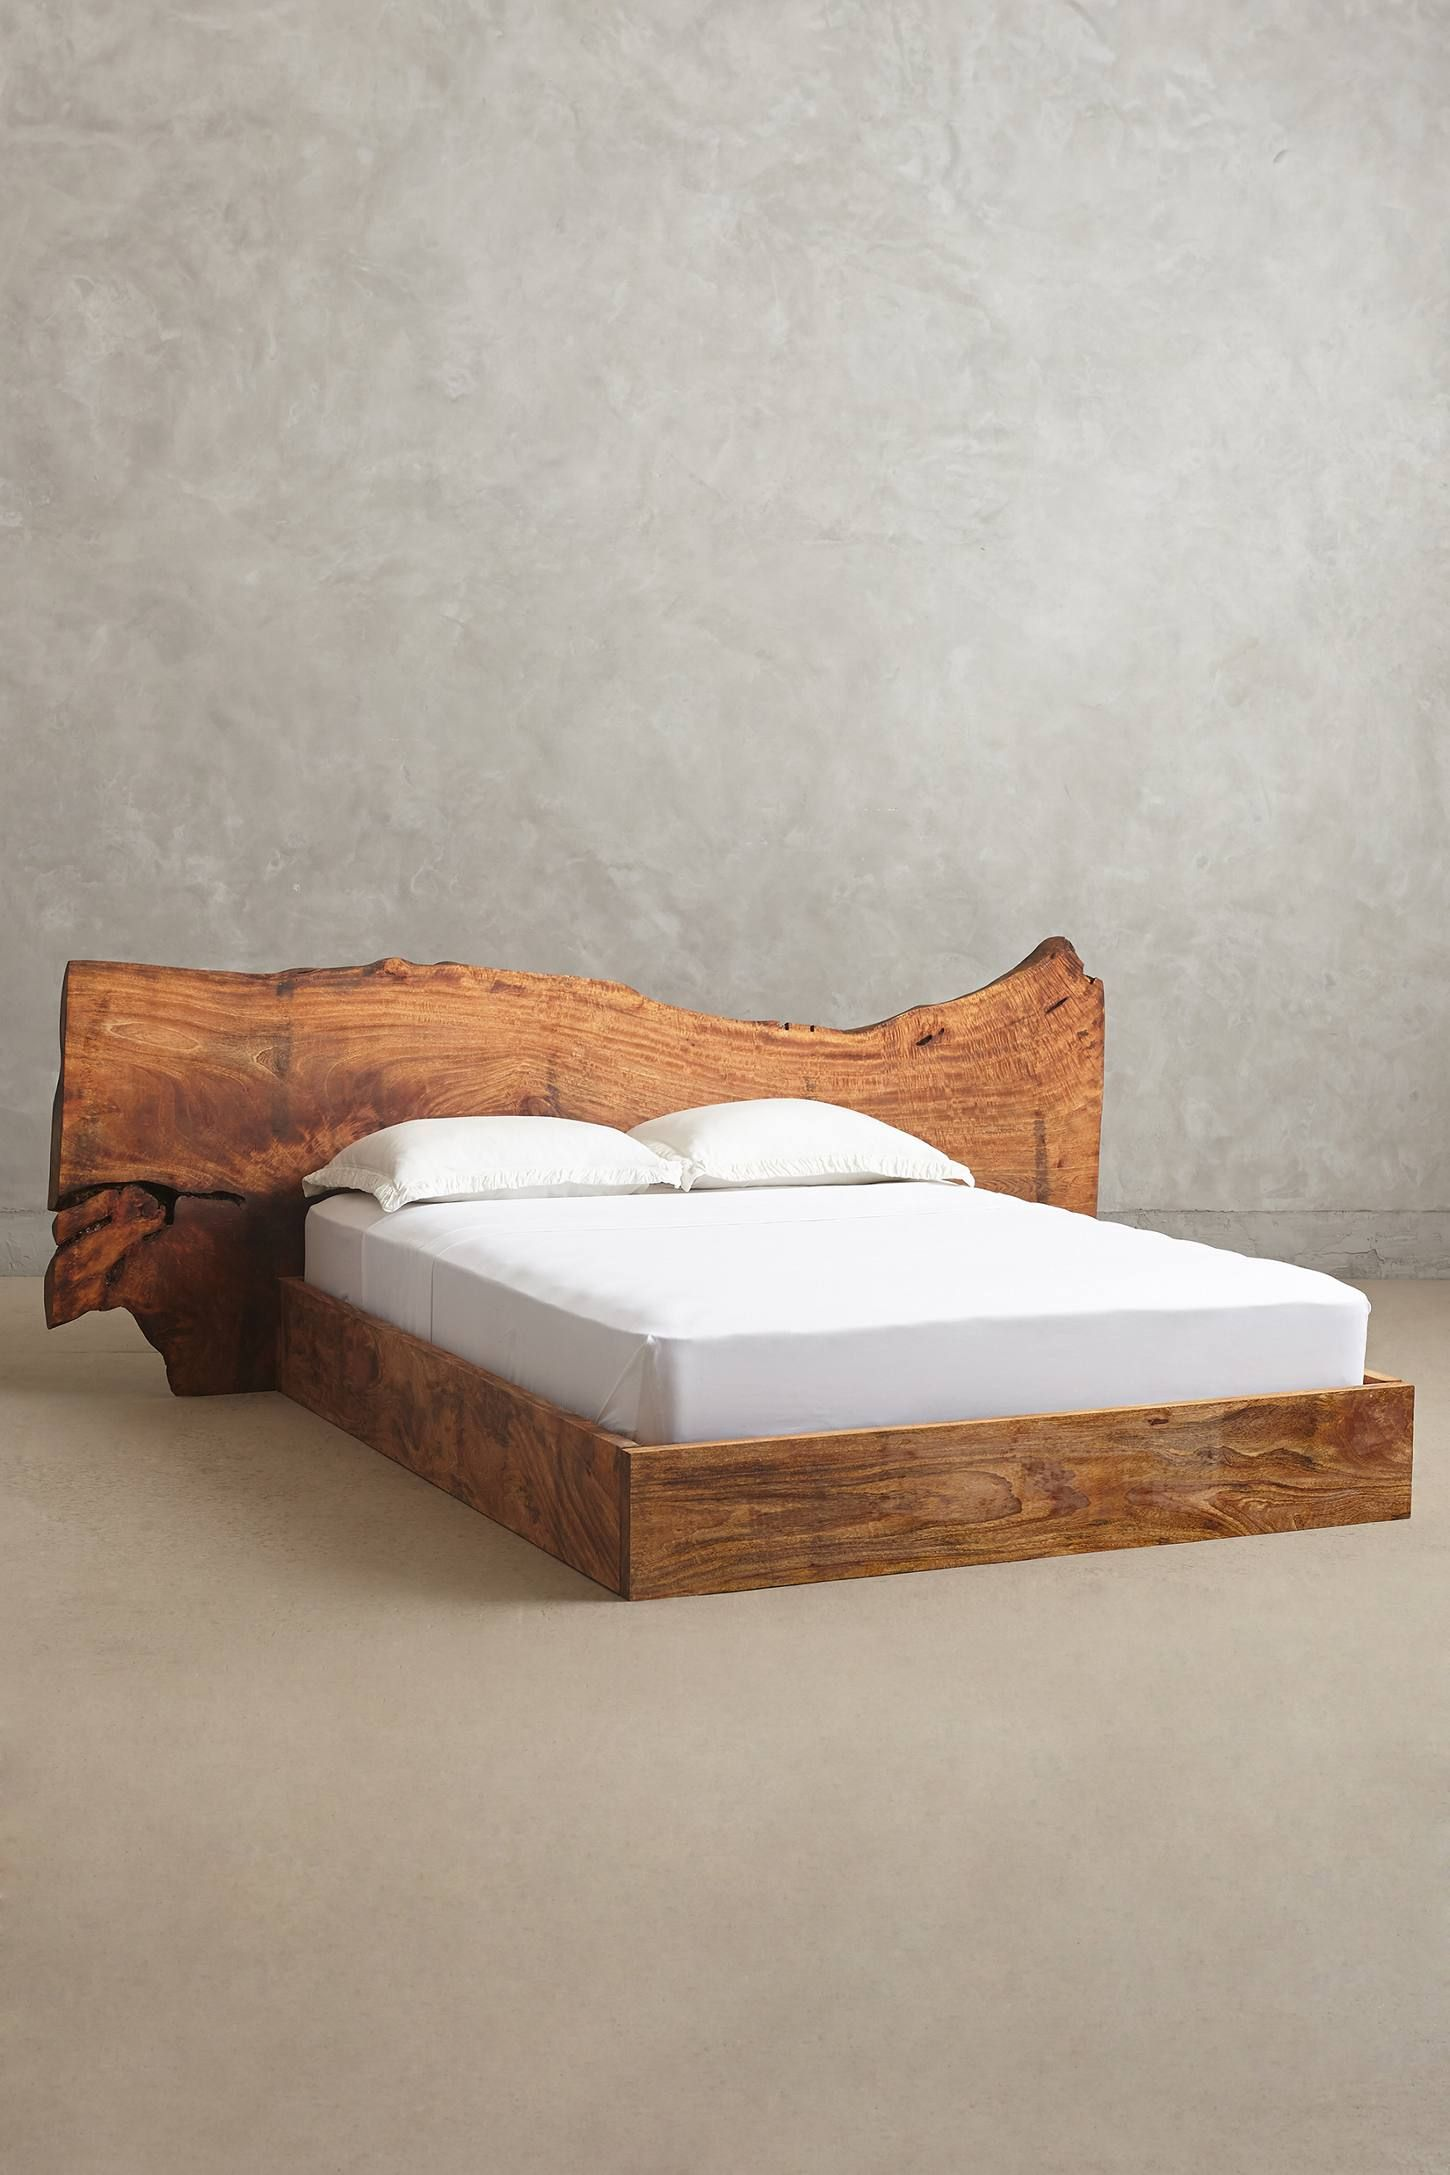 Queen Bed Frame Fantastic Furniture Live Edge Wood Queen Bed Master Bedrooms Wood Beds